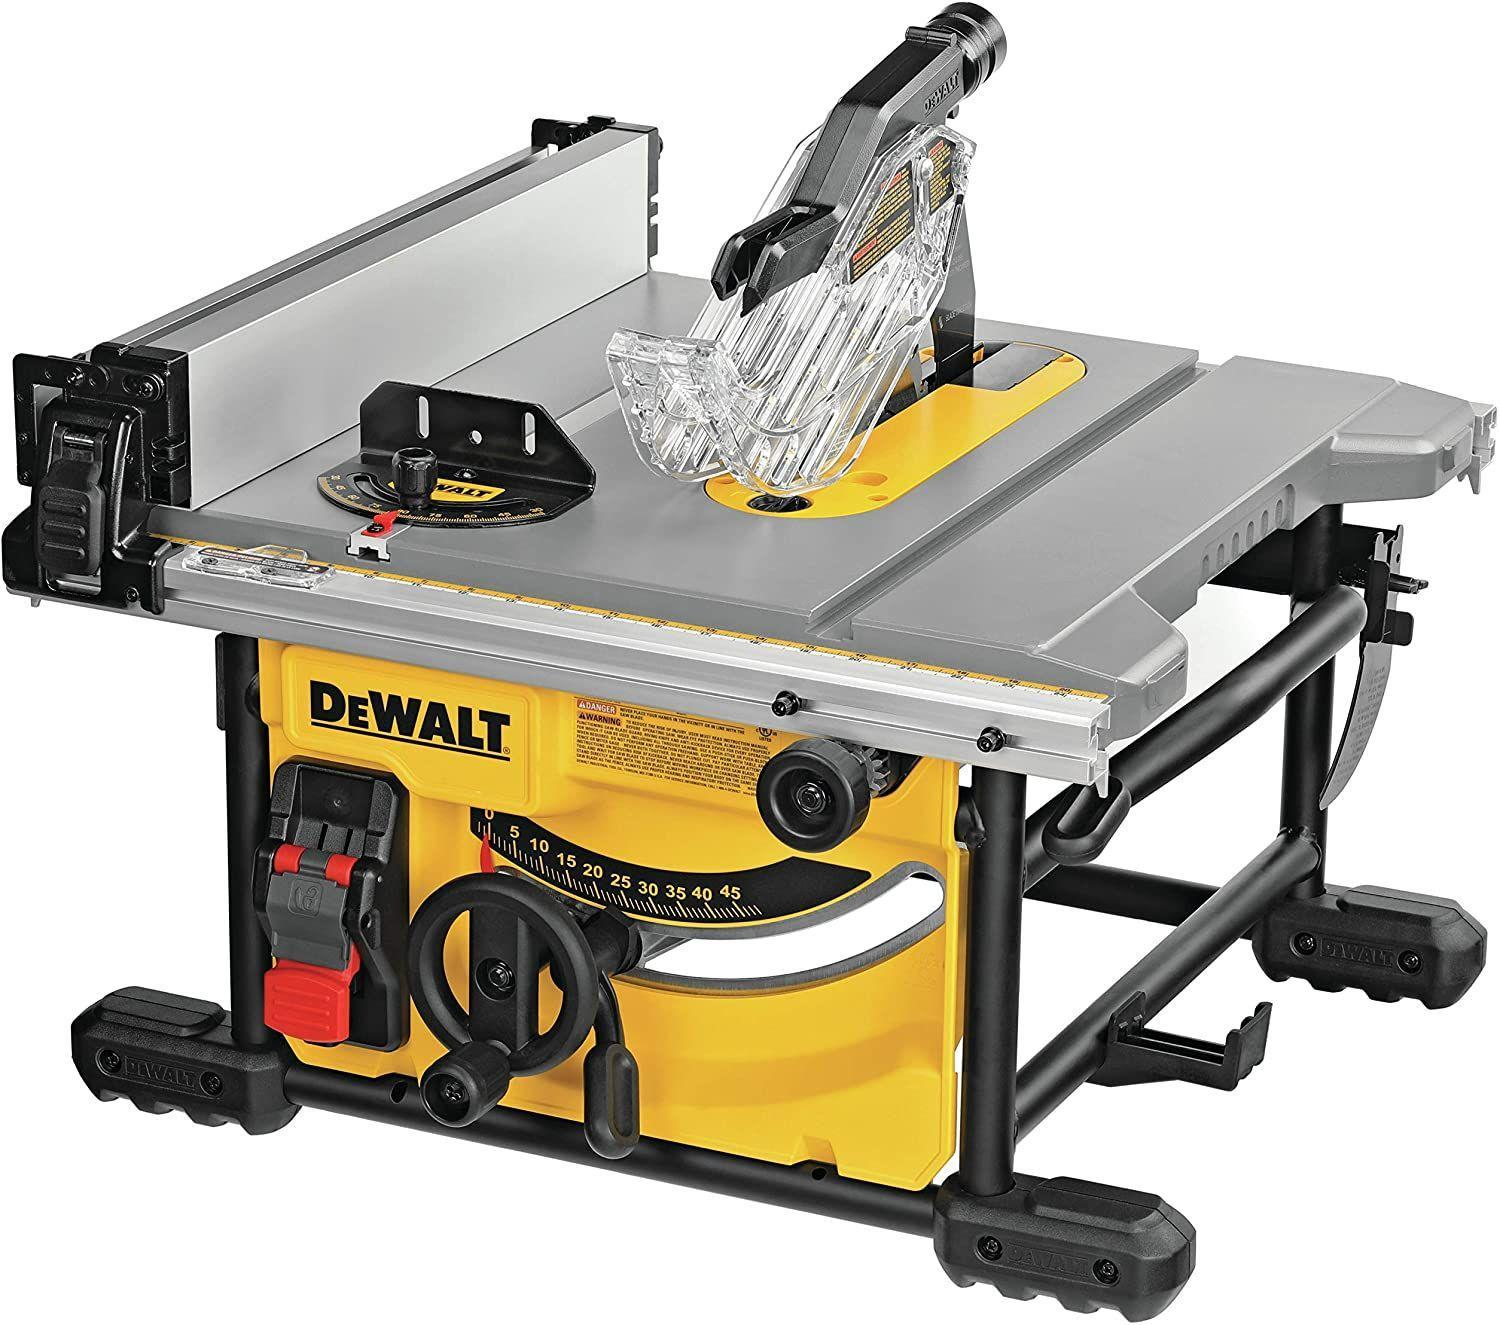 Best Portable Table Saw | DEWALT Table Saw for Jobsite